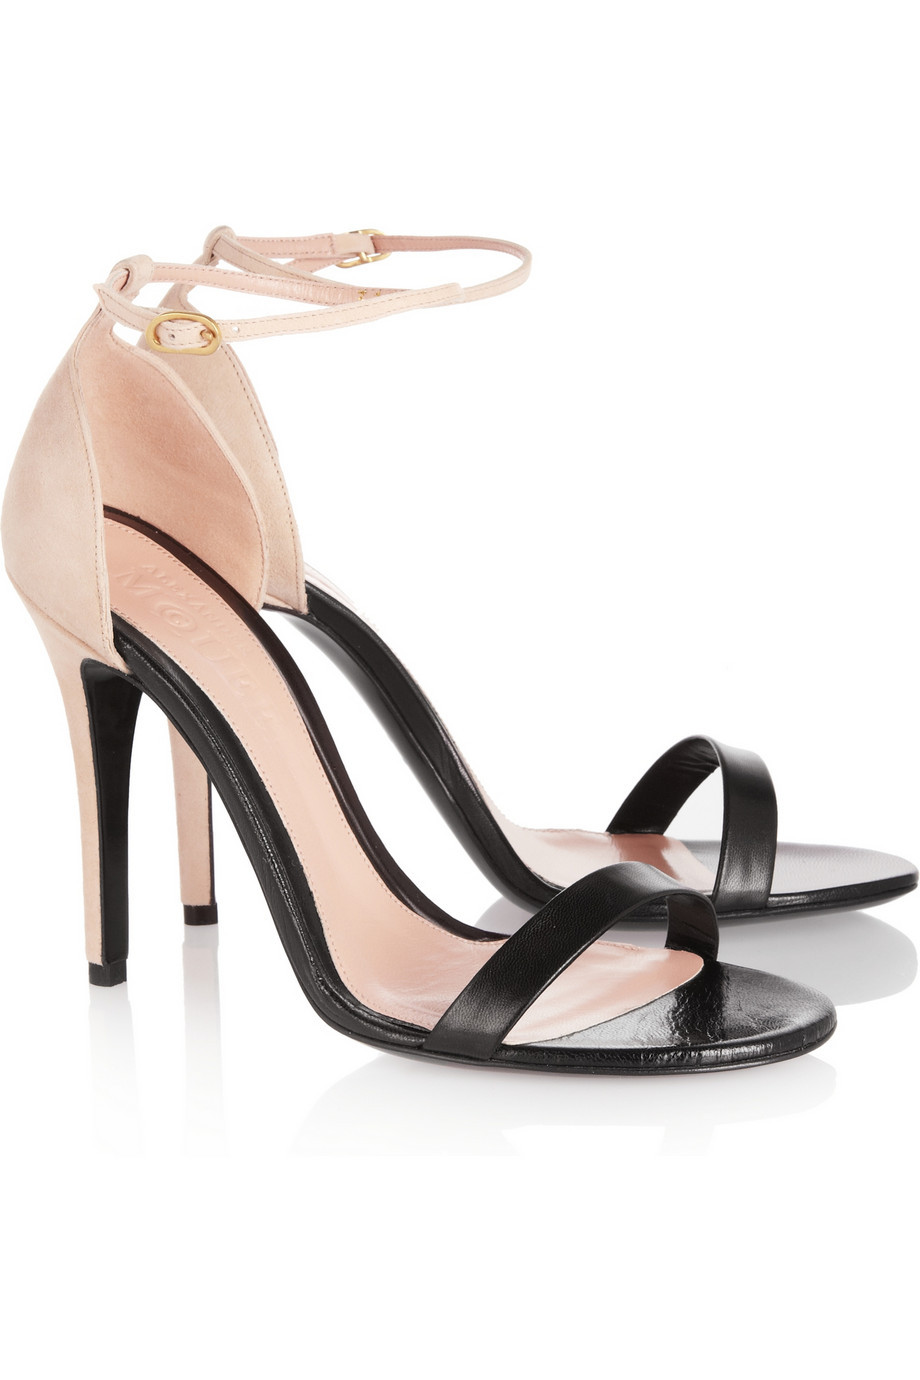 Black-and-blush-strappy-wedding-shoes.full